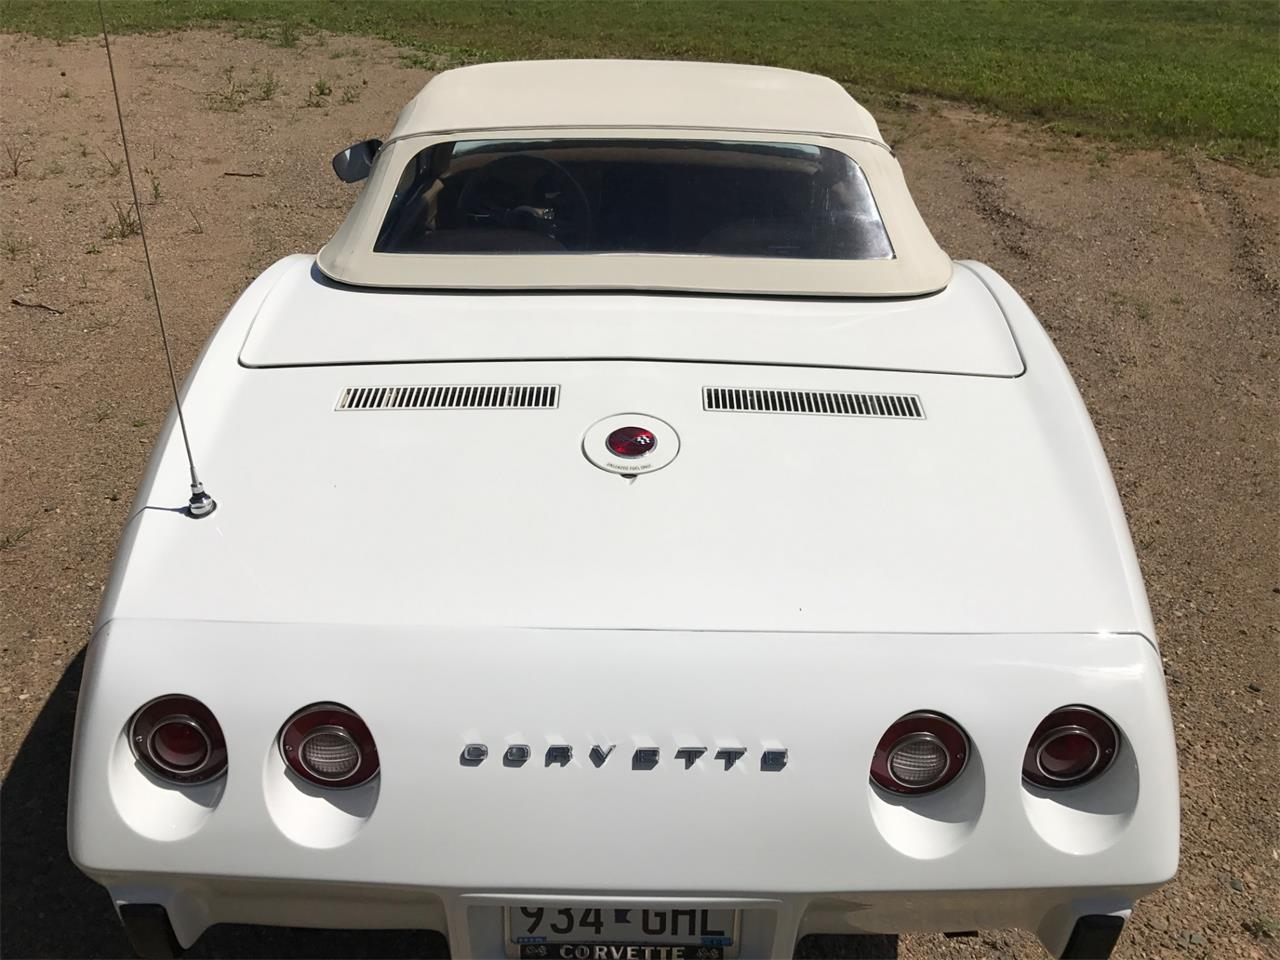 Large Picture of 1975 Corvette located in Brainerd Minnesota - $22,500.00 - LJ3Z